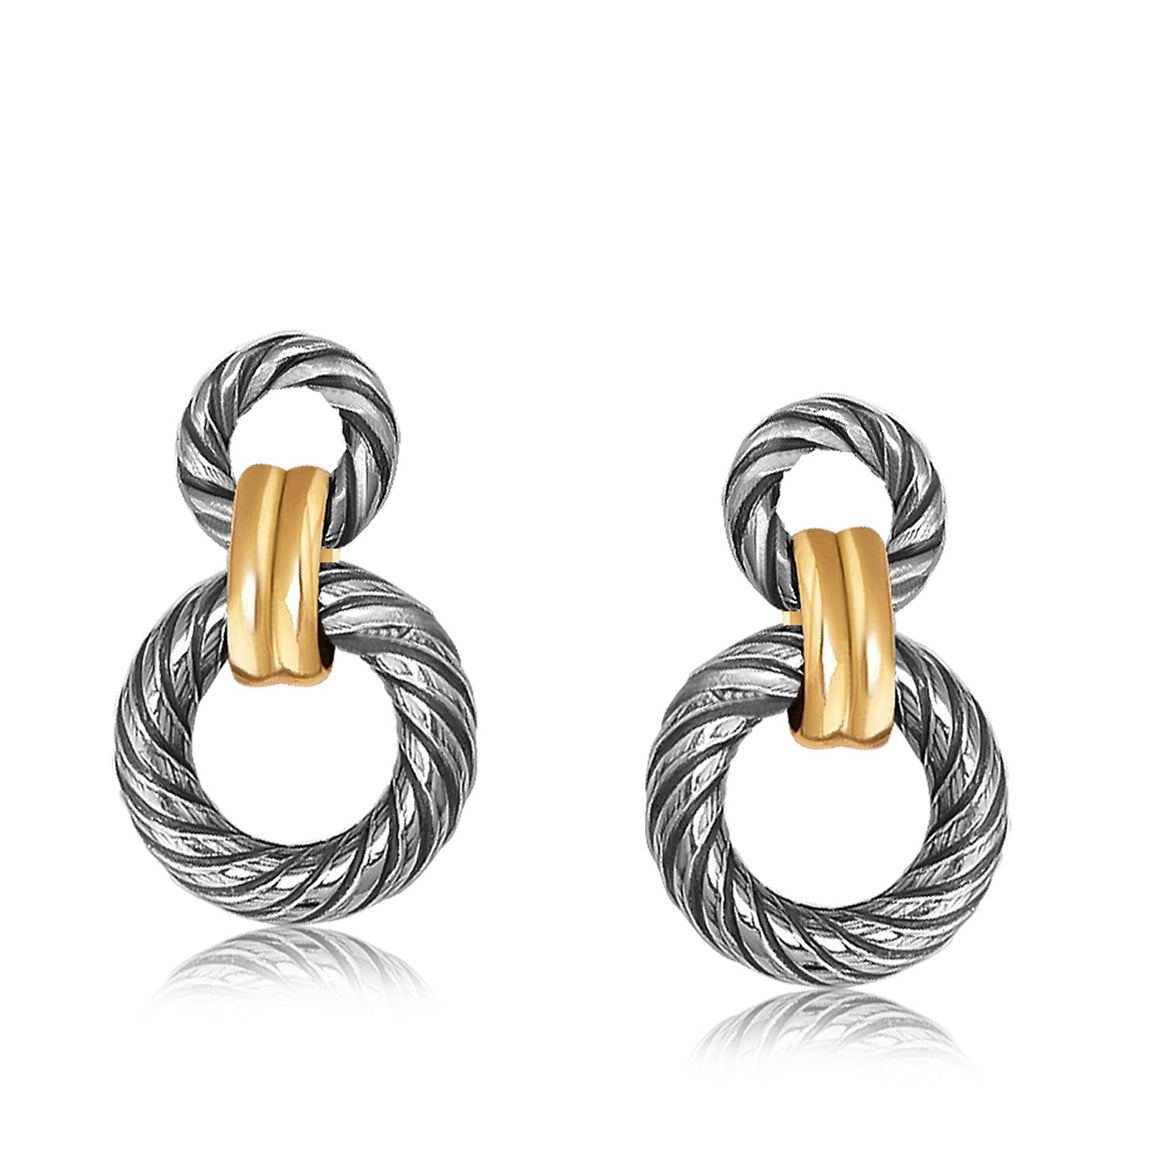 18k Yellow Gold and Sterling Silver Earrings with Circular Cable and Links